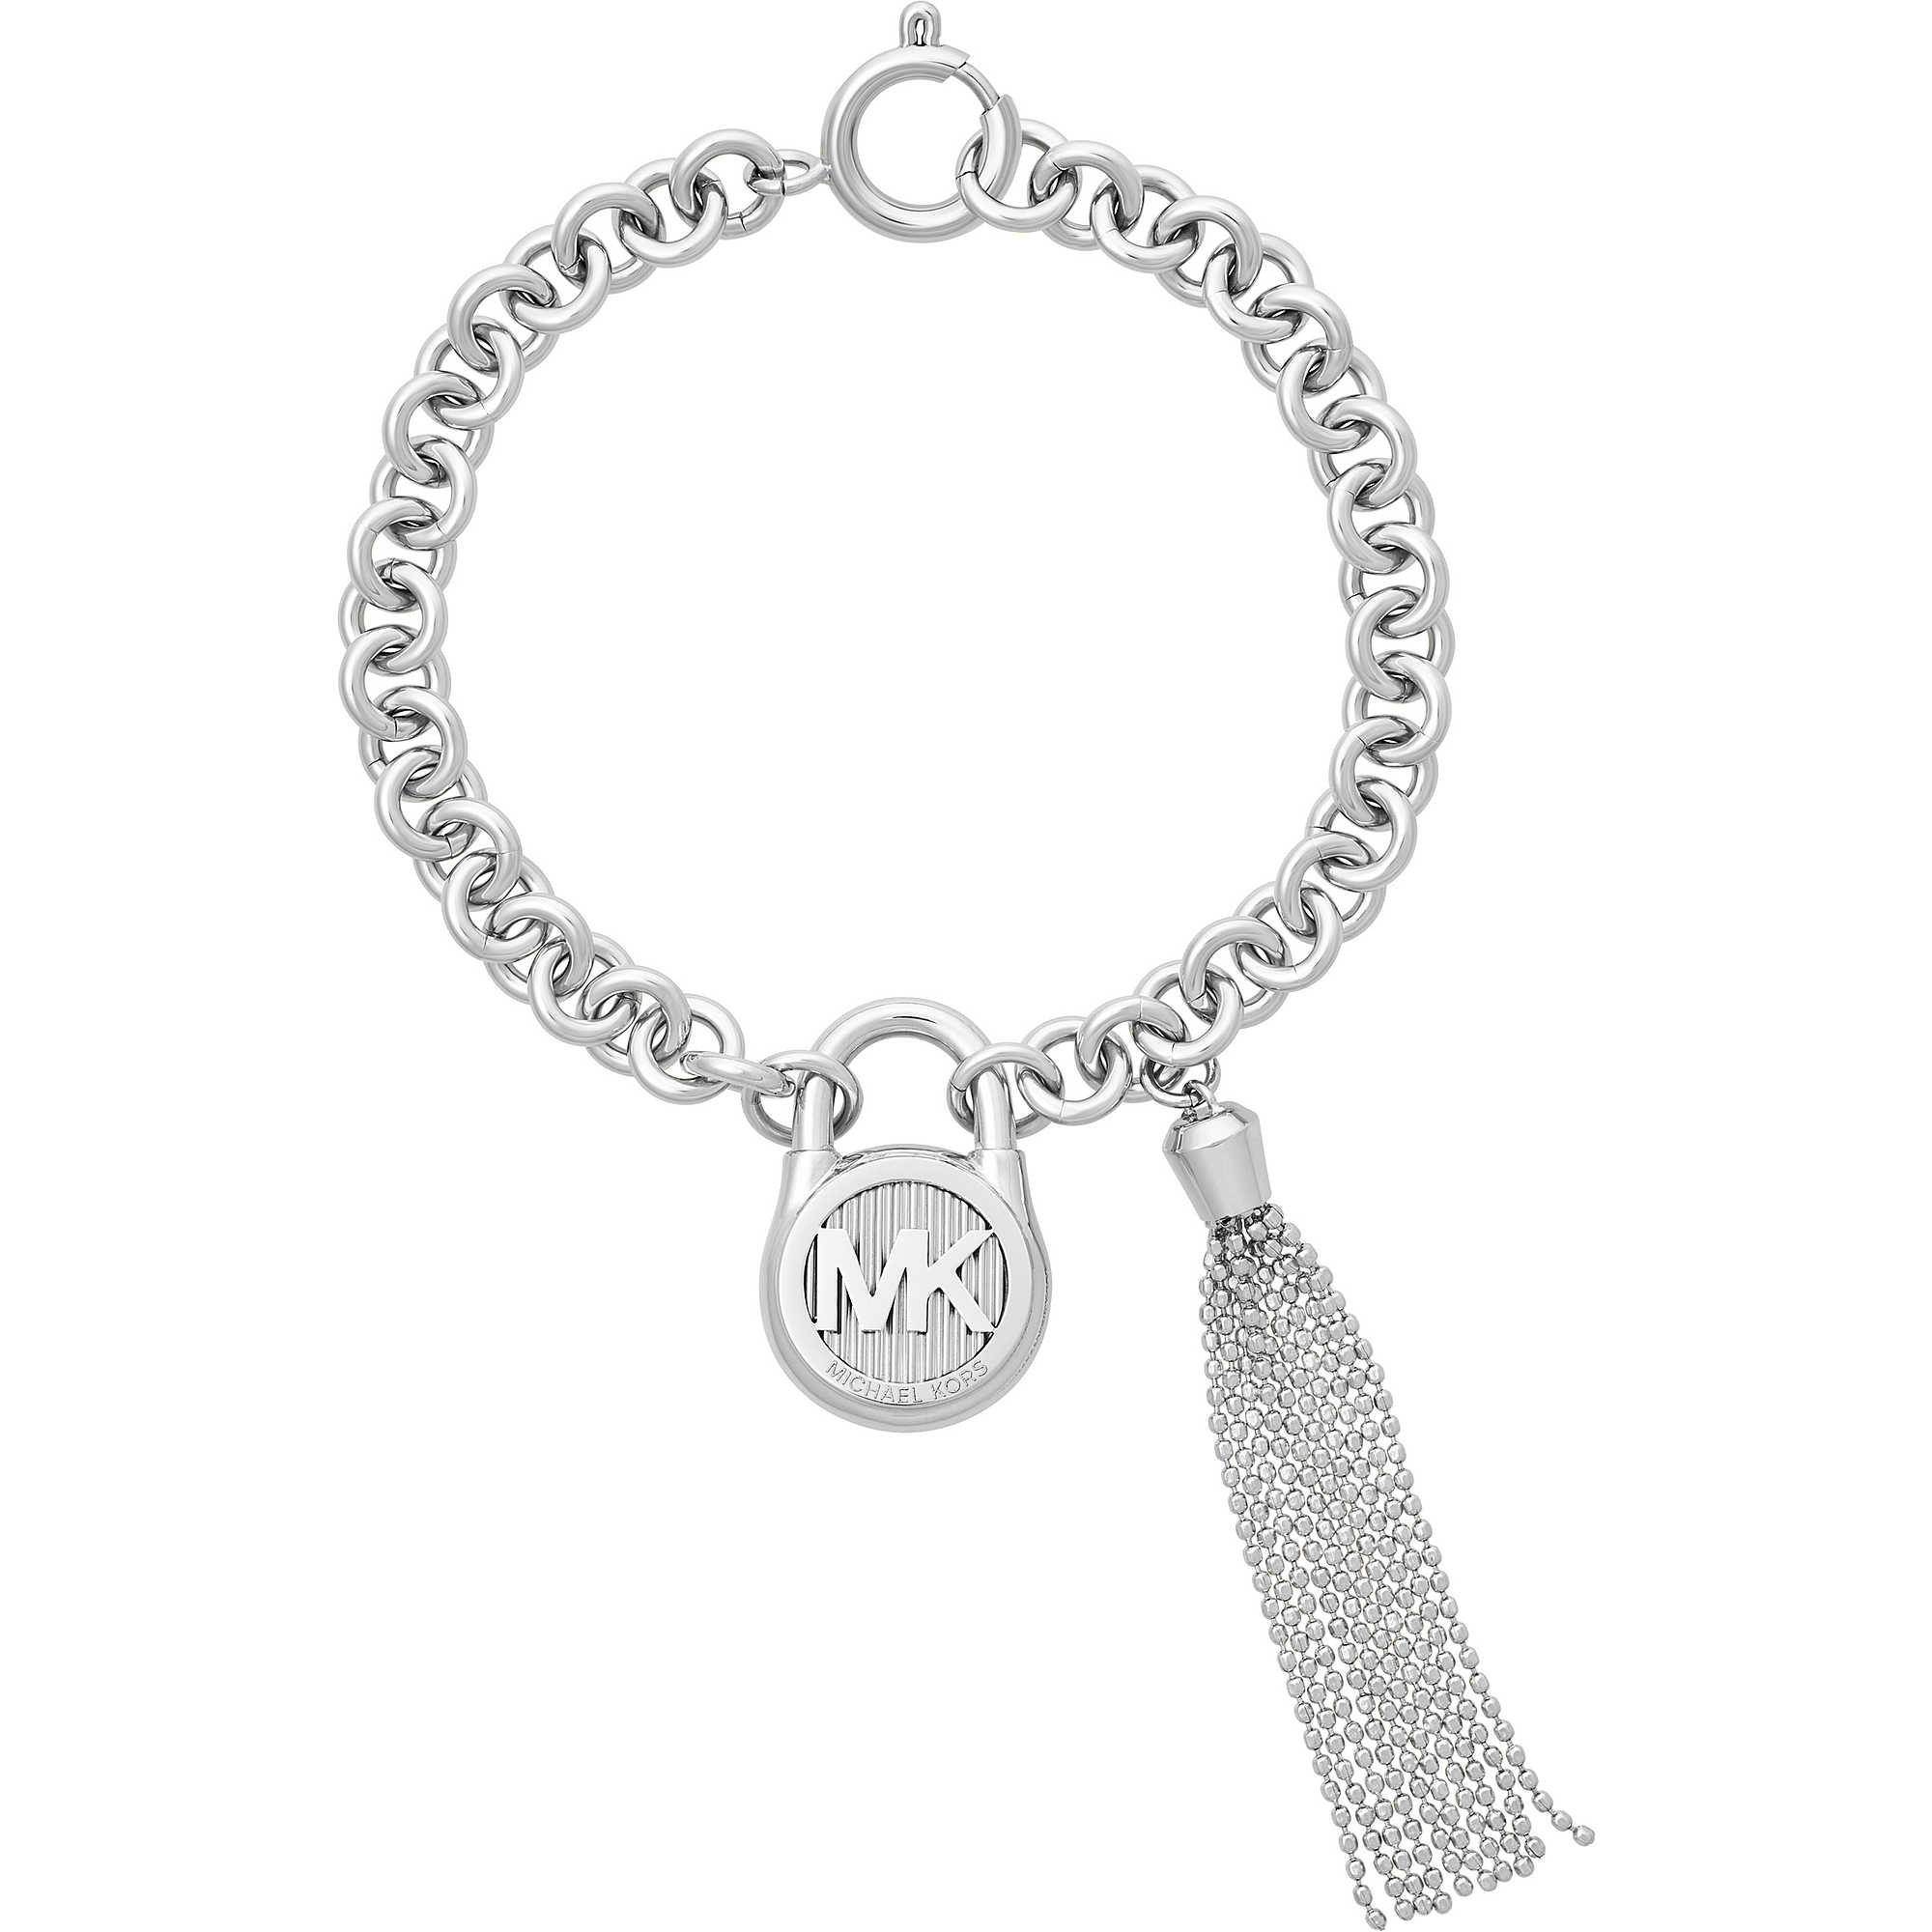 michael crystal kors bracelet flex logo cuff outlet goldtone gray tone p jewelry fit fashion gold